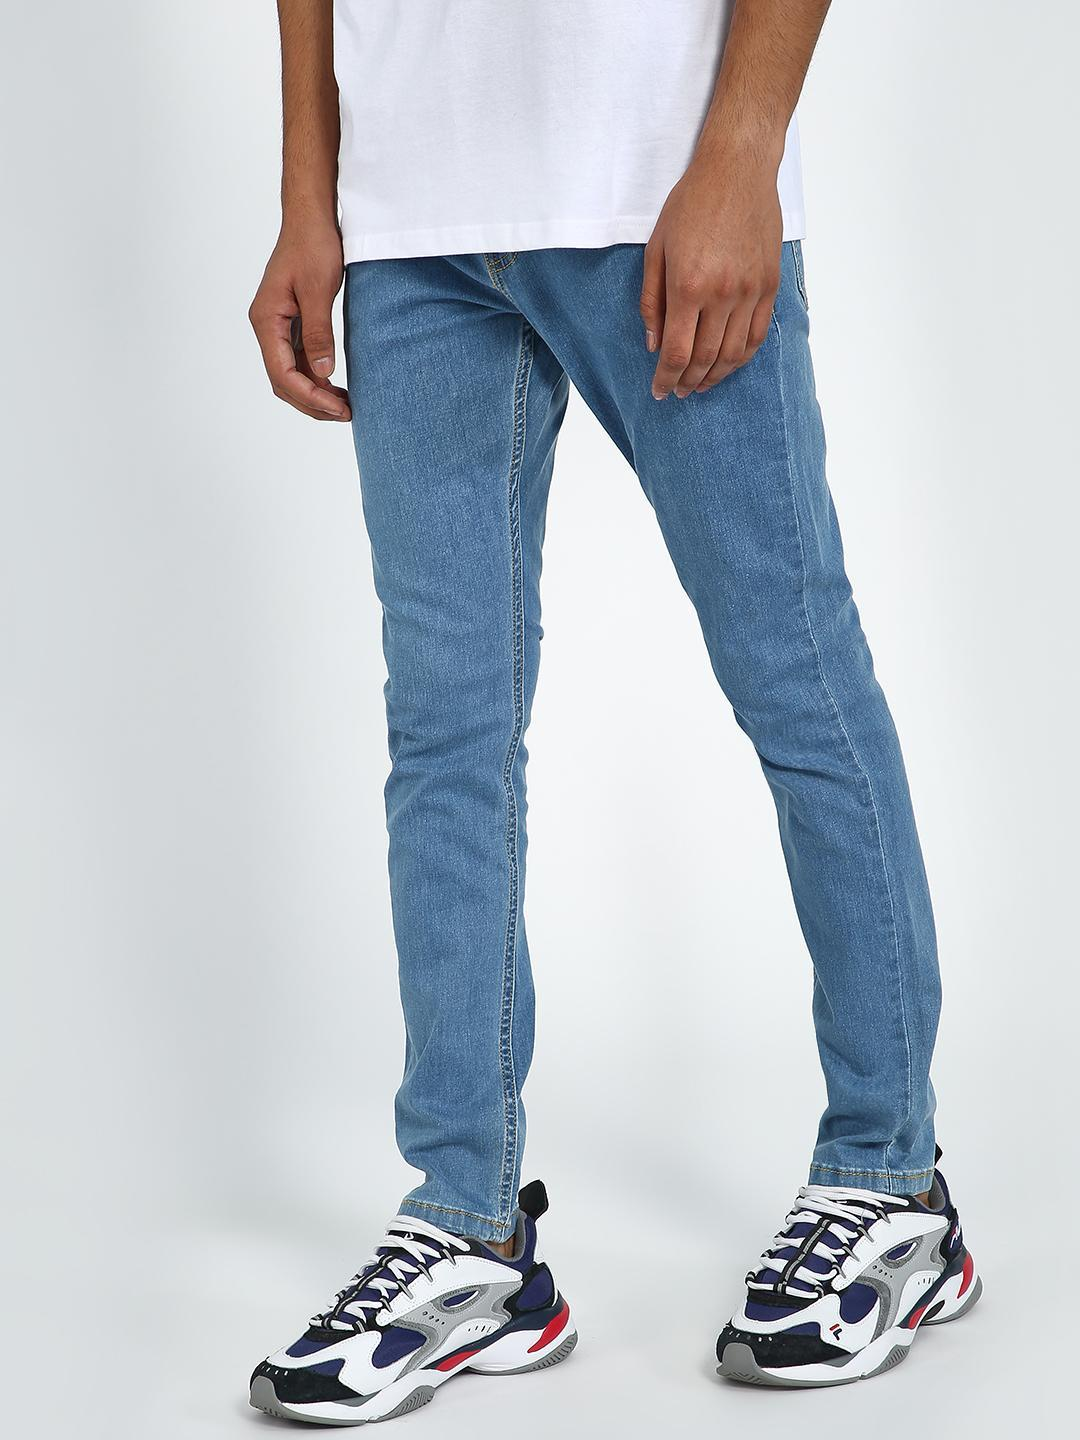 Blue Saint Light Blue Light Wash Skinny Jeans 1